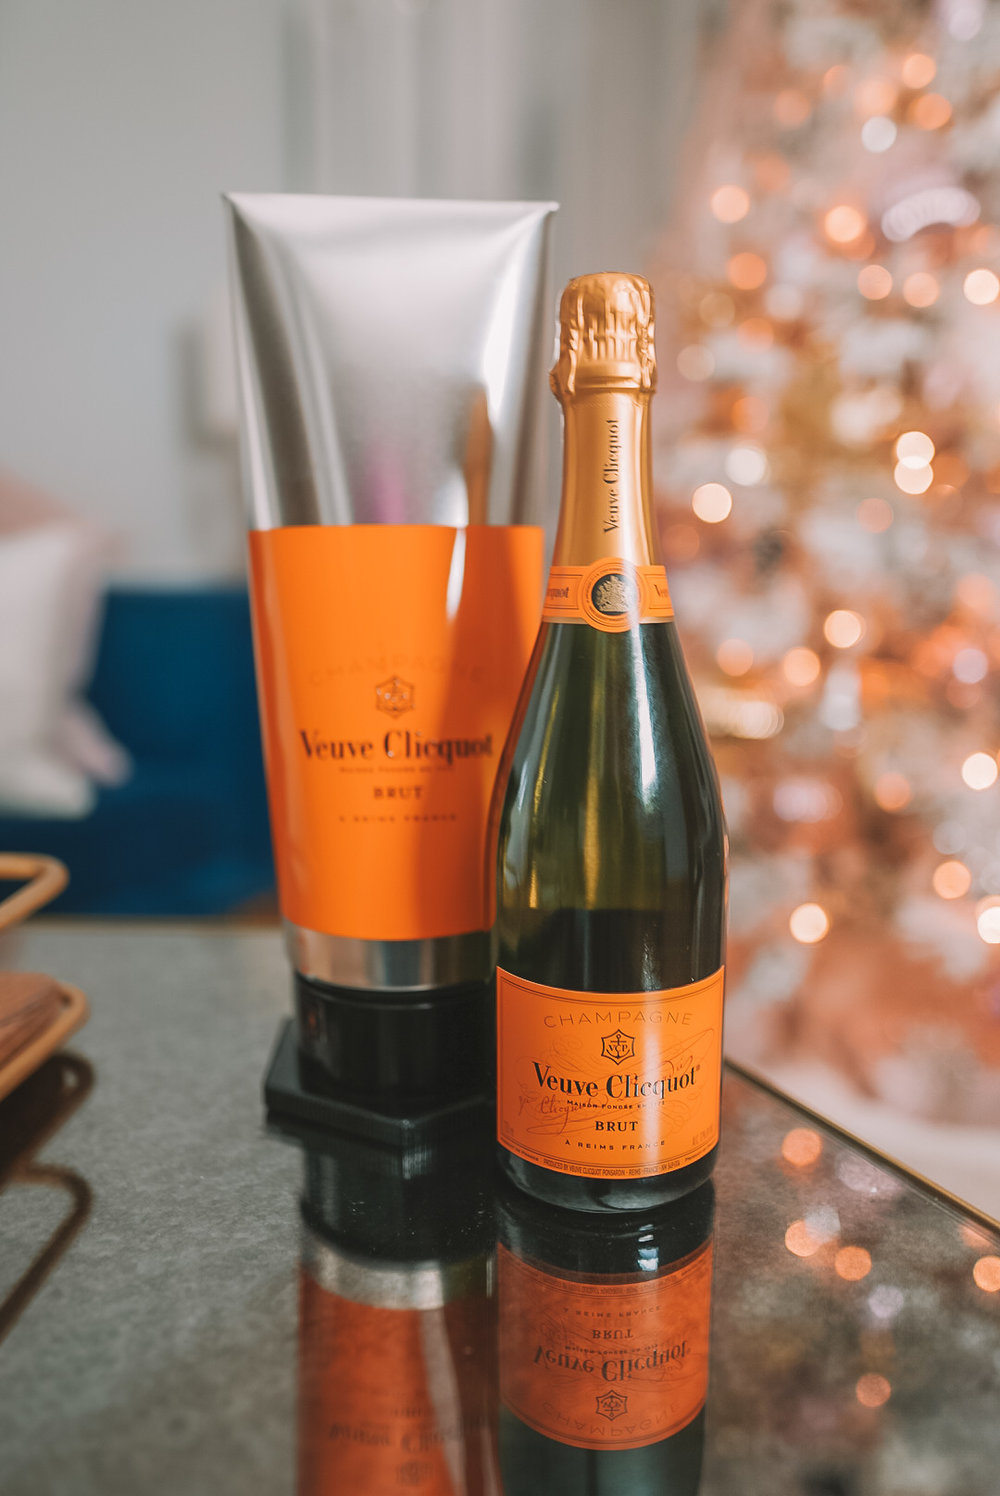 Veuve Clicquot - Ain't no party like a Champaign party! This is a luxury Champaign and one of my absolute favorites, if not the favorite. This Champaign brings a feel of luxurious finesse to your holiday party, and it tastes like a celebration!